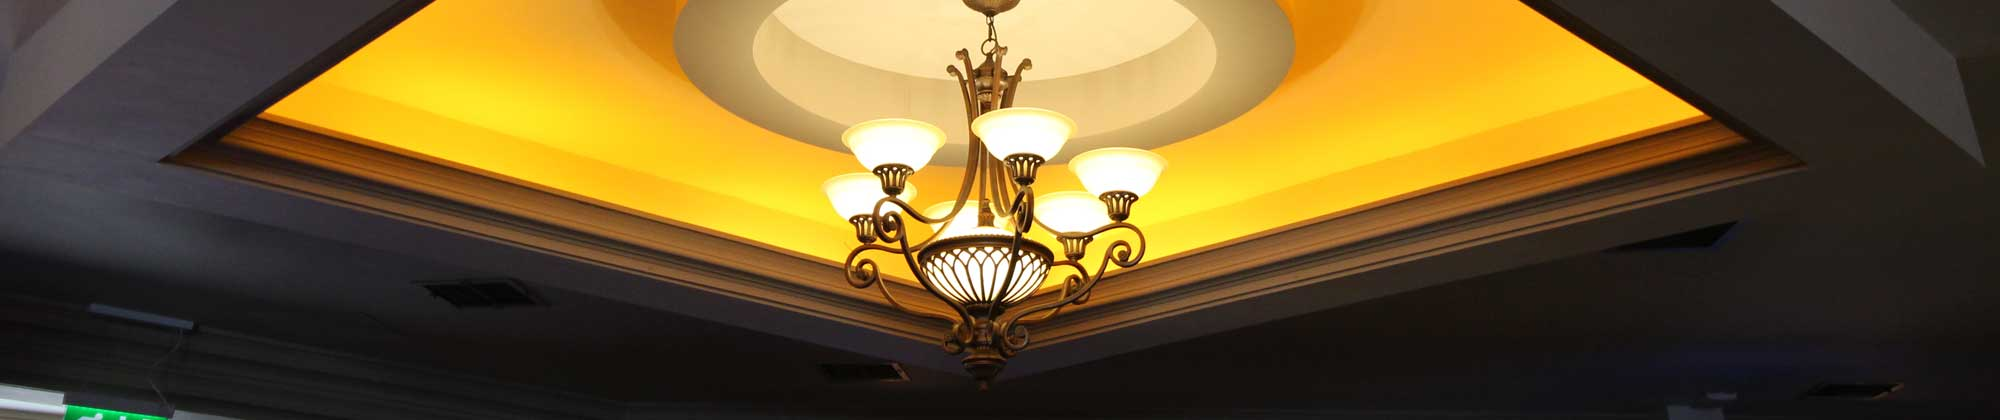 J M Lighting Residential and commercial lighting